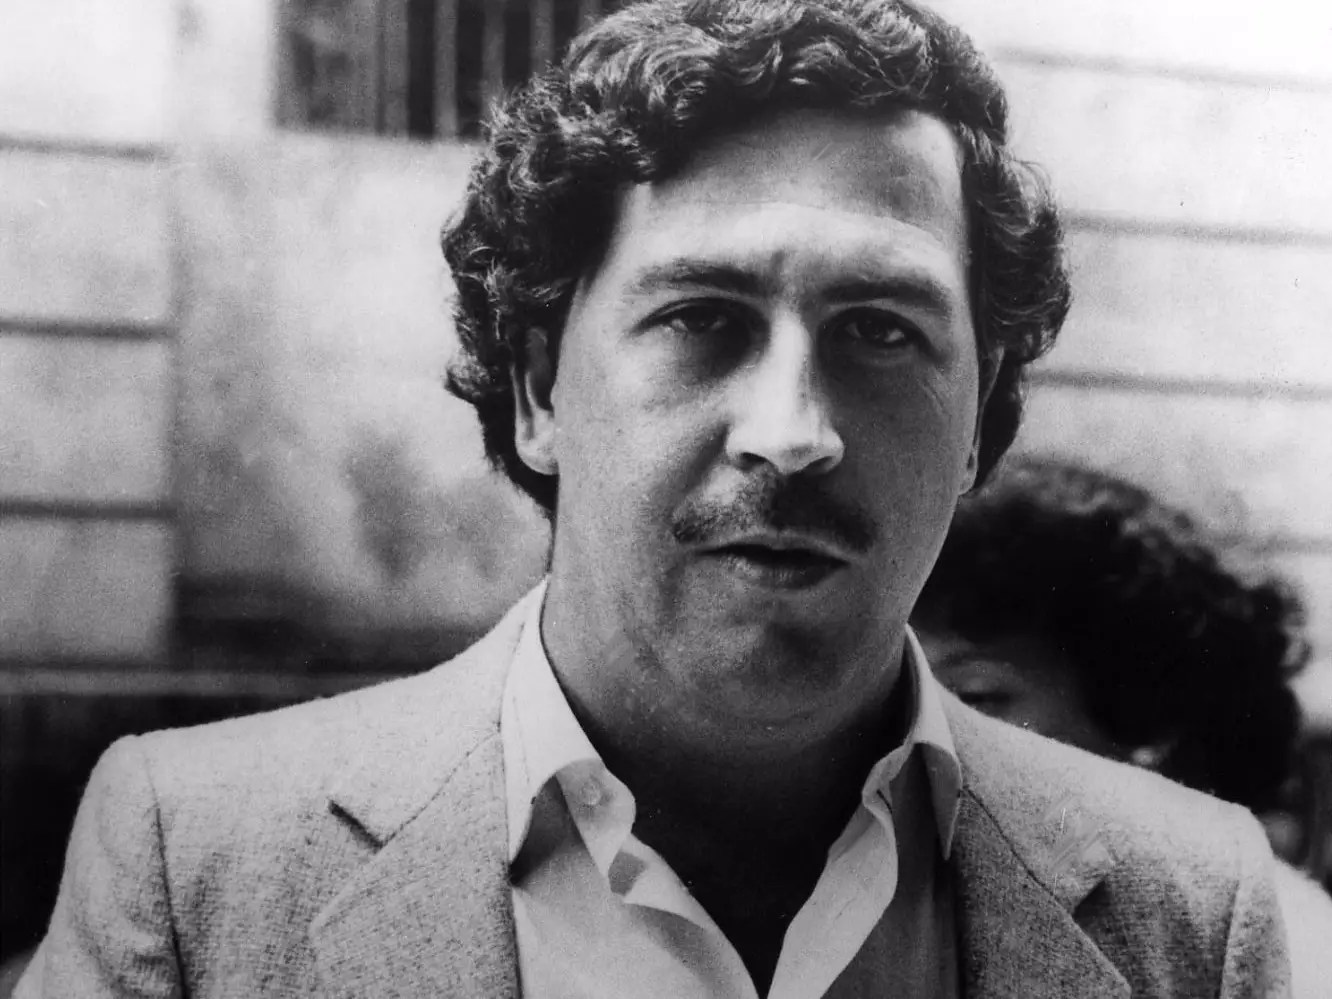 https://i0.wp.com/static5.businessinsider.com/image/55f1a7cdbd86ef1d008b9561/legendary-drug-lord-pablo-escobar-lost-21-billion-in-cash-each-year--and-it-didnt-matter.jpg